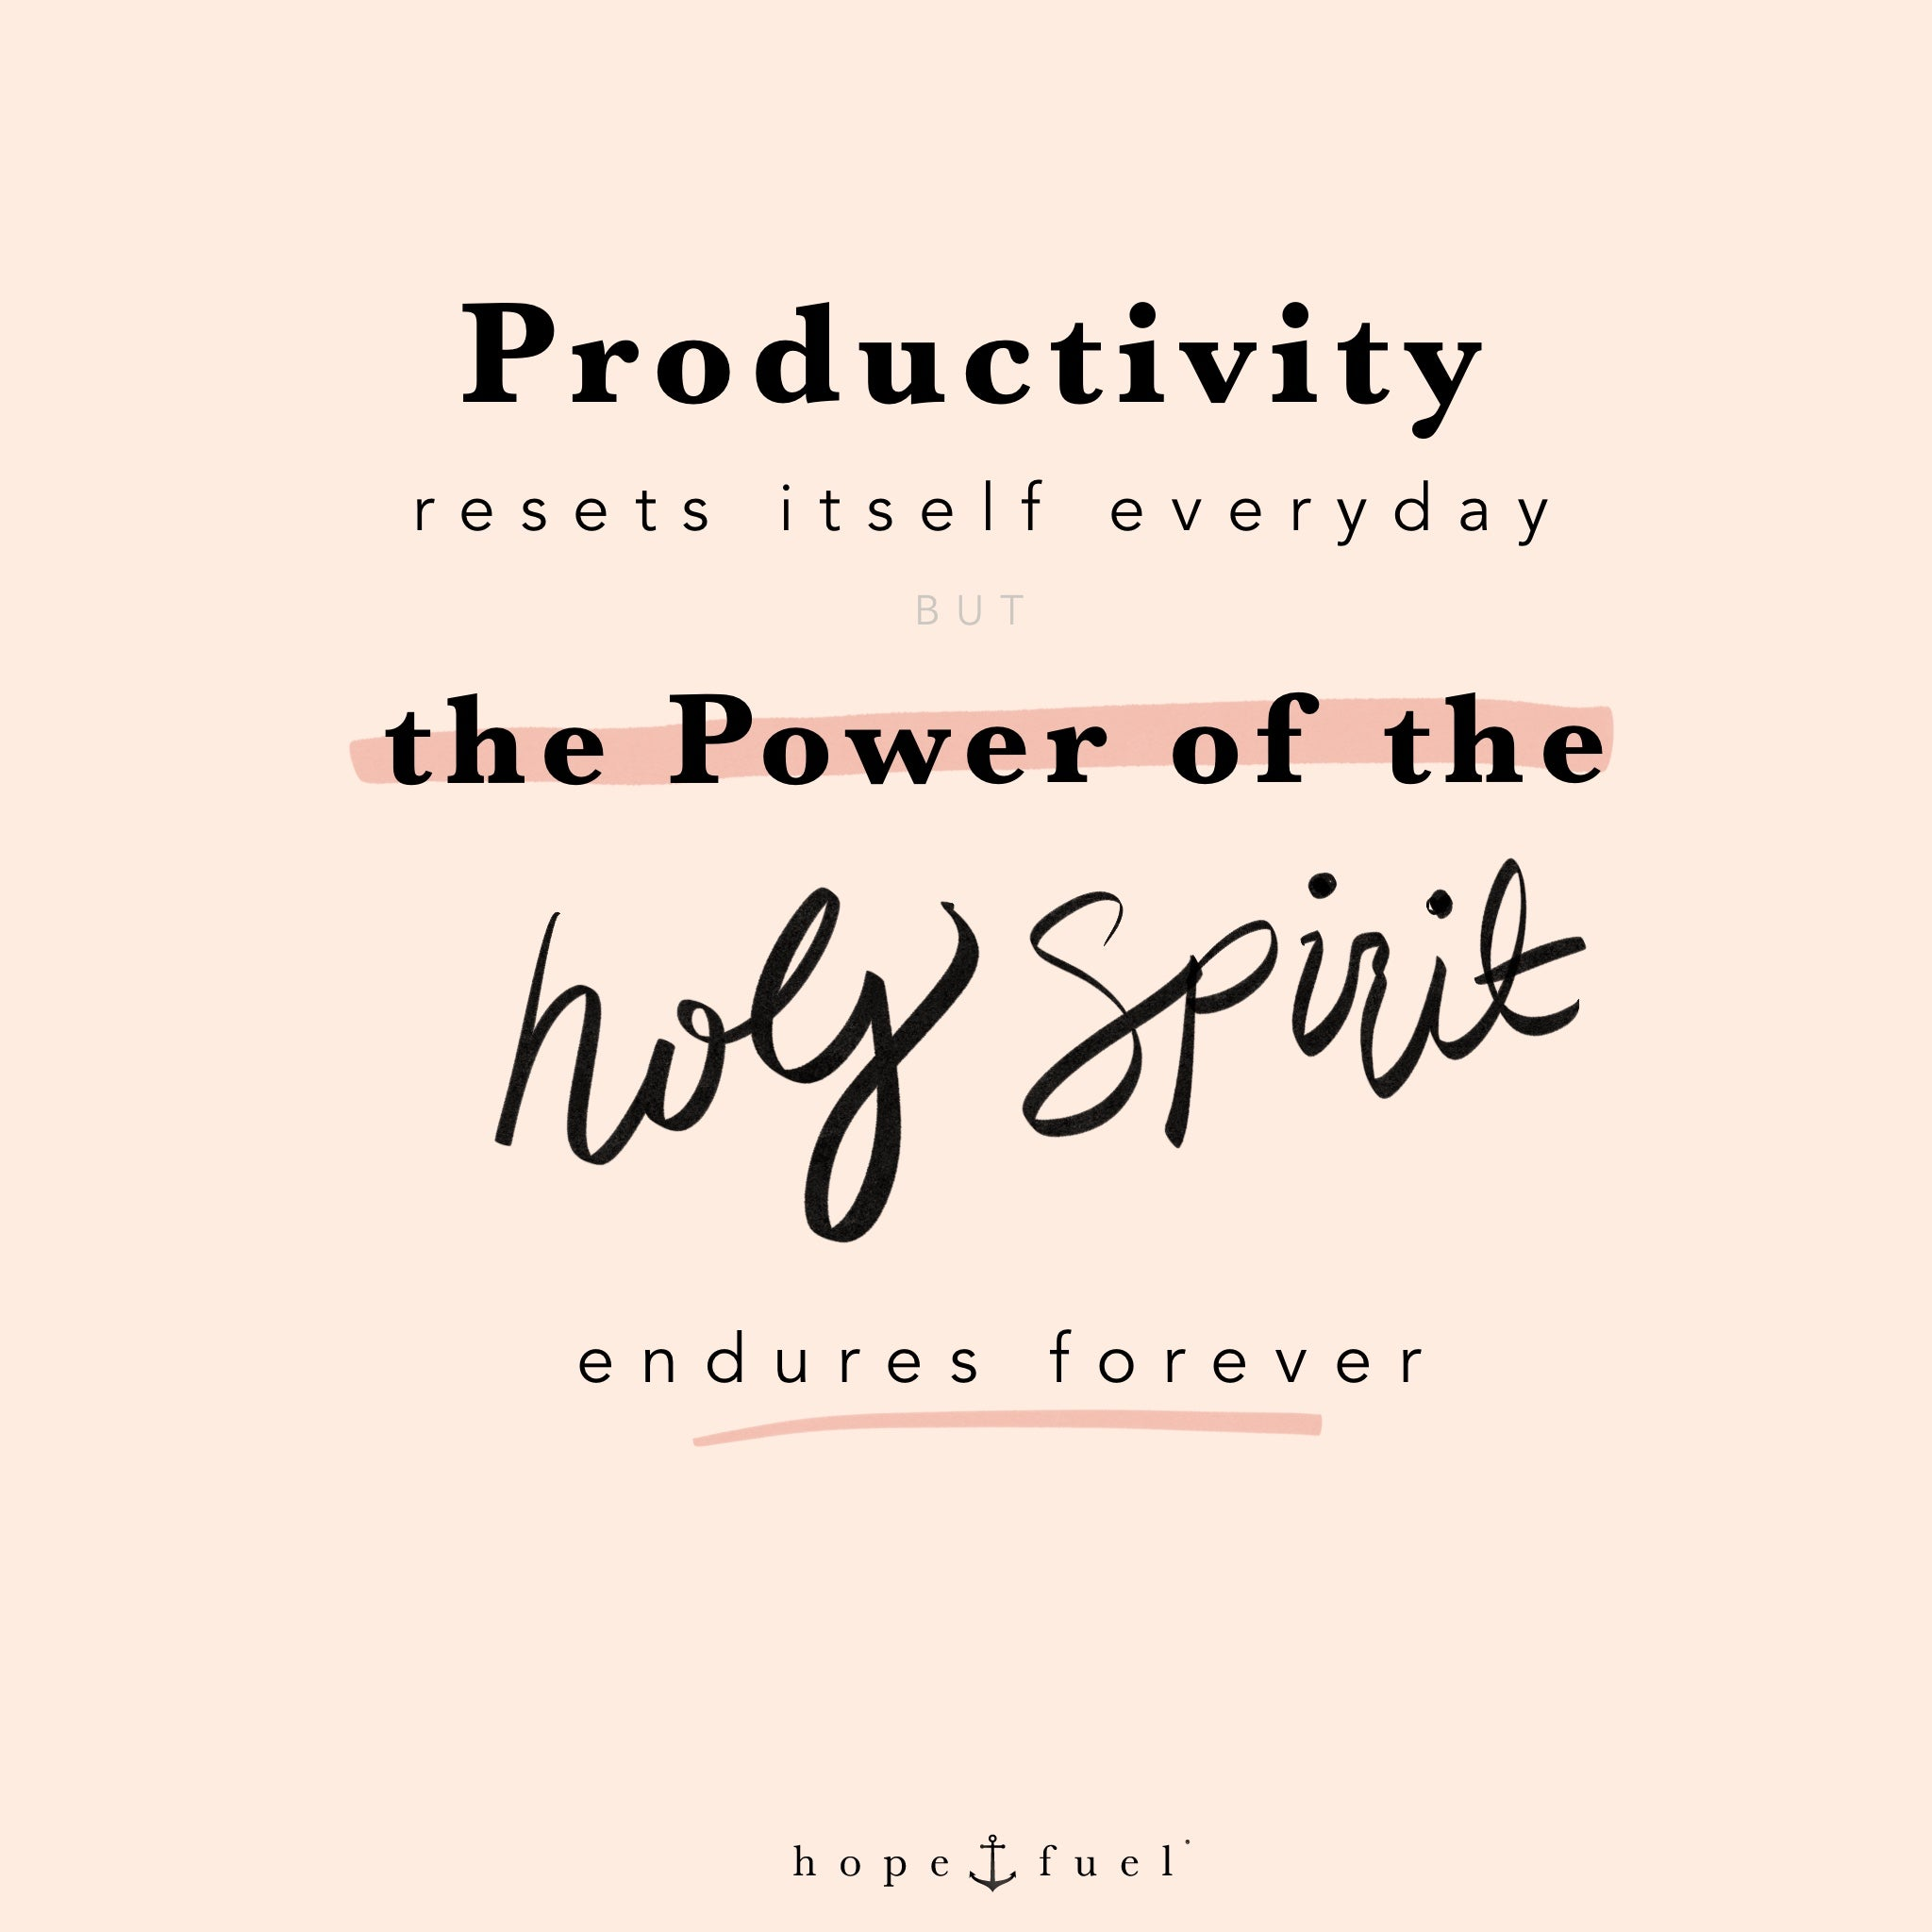 productivity resets itself everyday but the power of the holy spirit endures forever